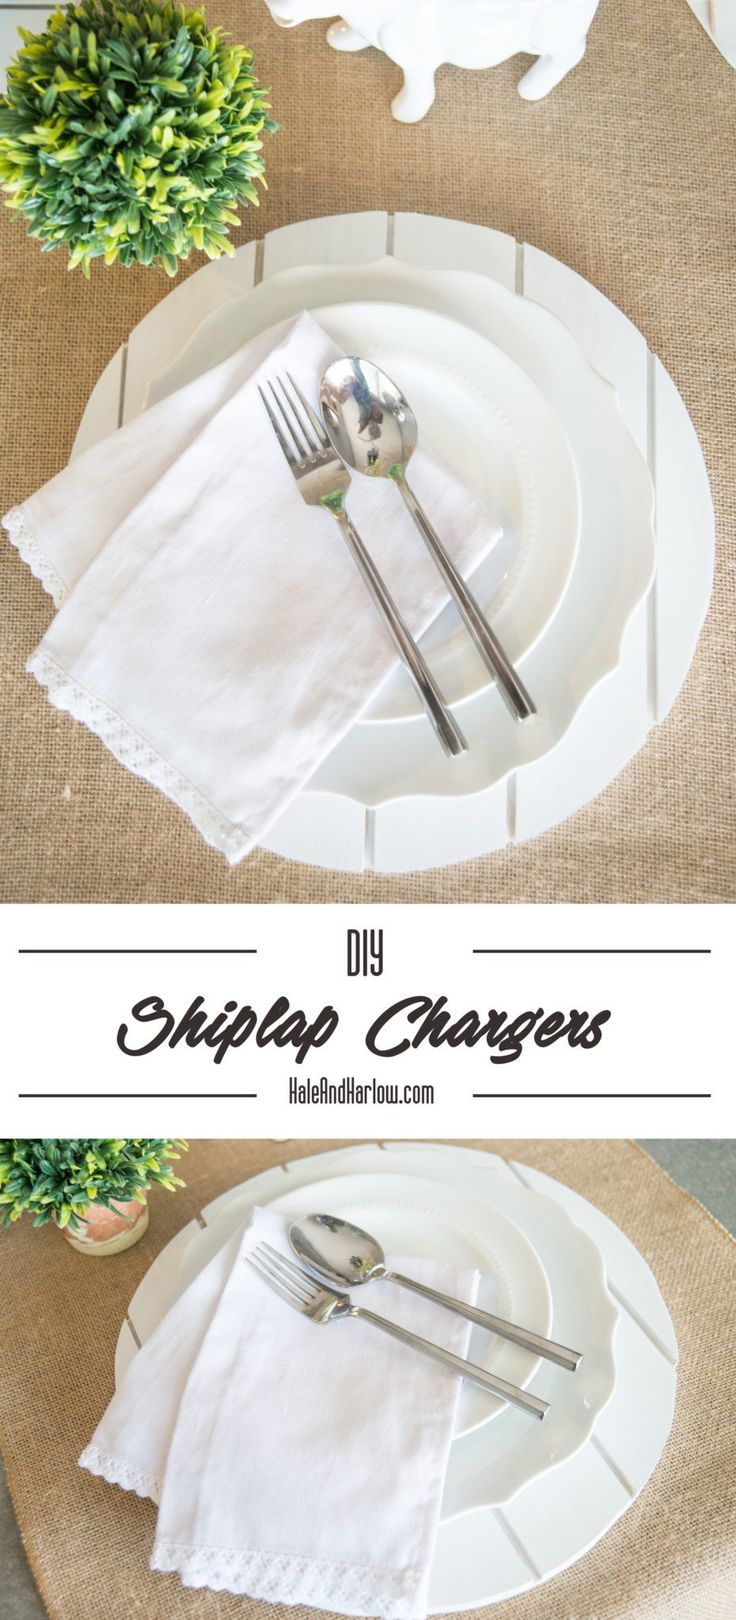 DIY instructions on how to build farmhouse chargers for a rustic tablescape. These will fit in perfectly with any country decor or farmhouse decor.